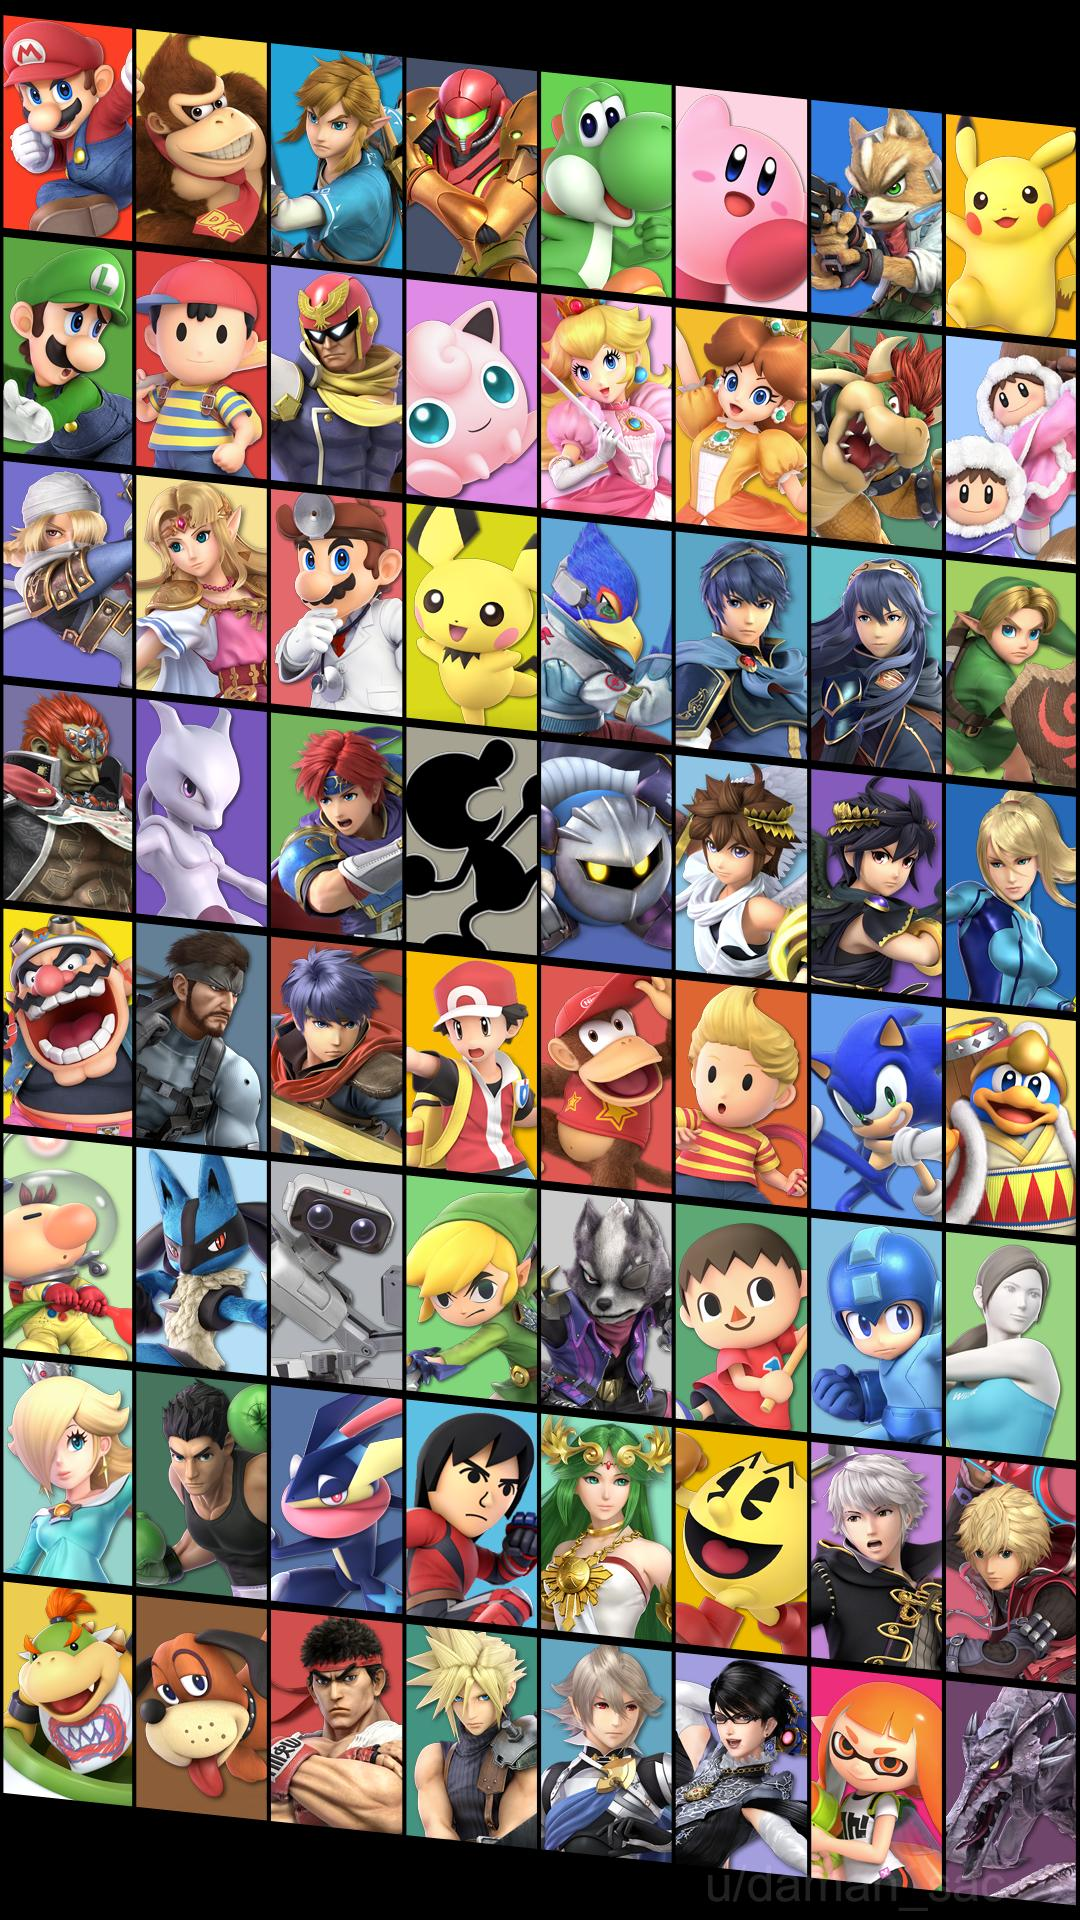 Super Smash Bros Iphone Wallpaper Posted By Ethan Anderson